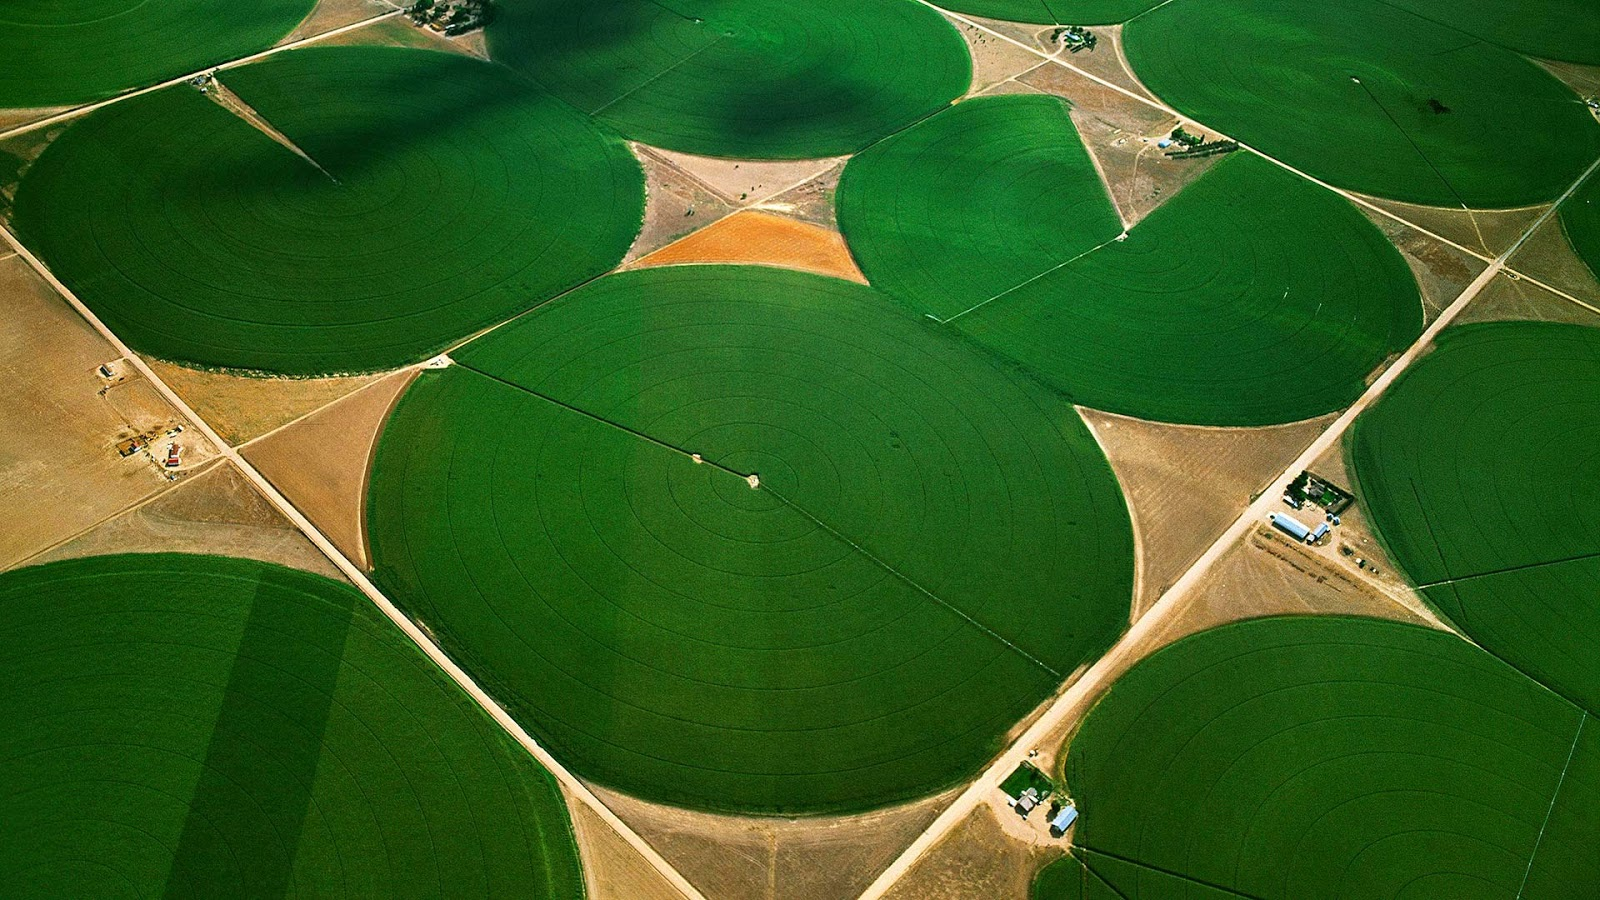 Circular agricultural fields in Morgan County, Colorado © Jim Wark/Getty Images